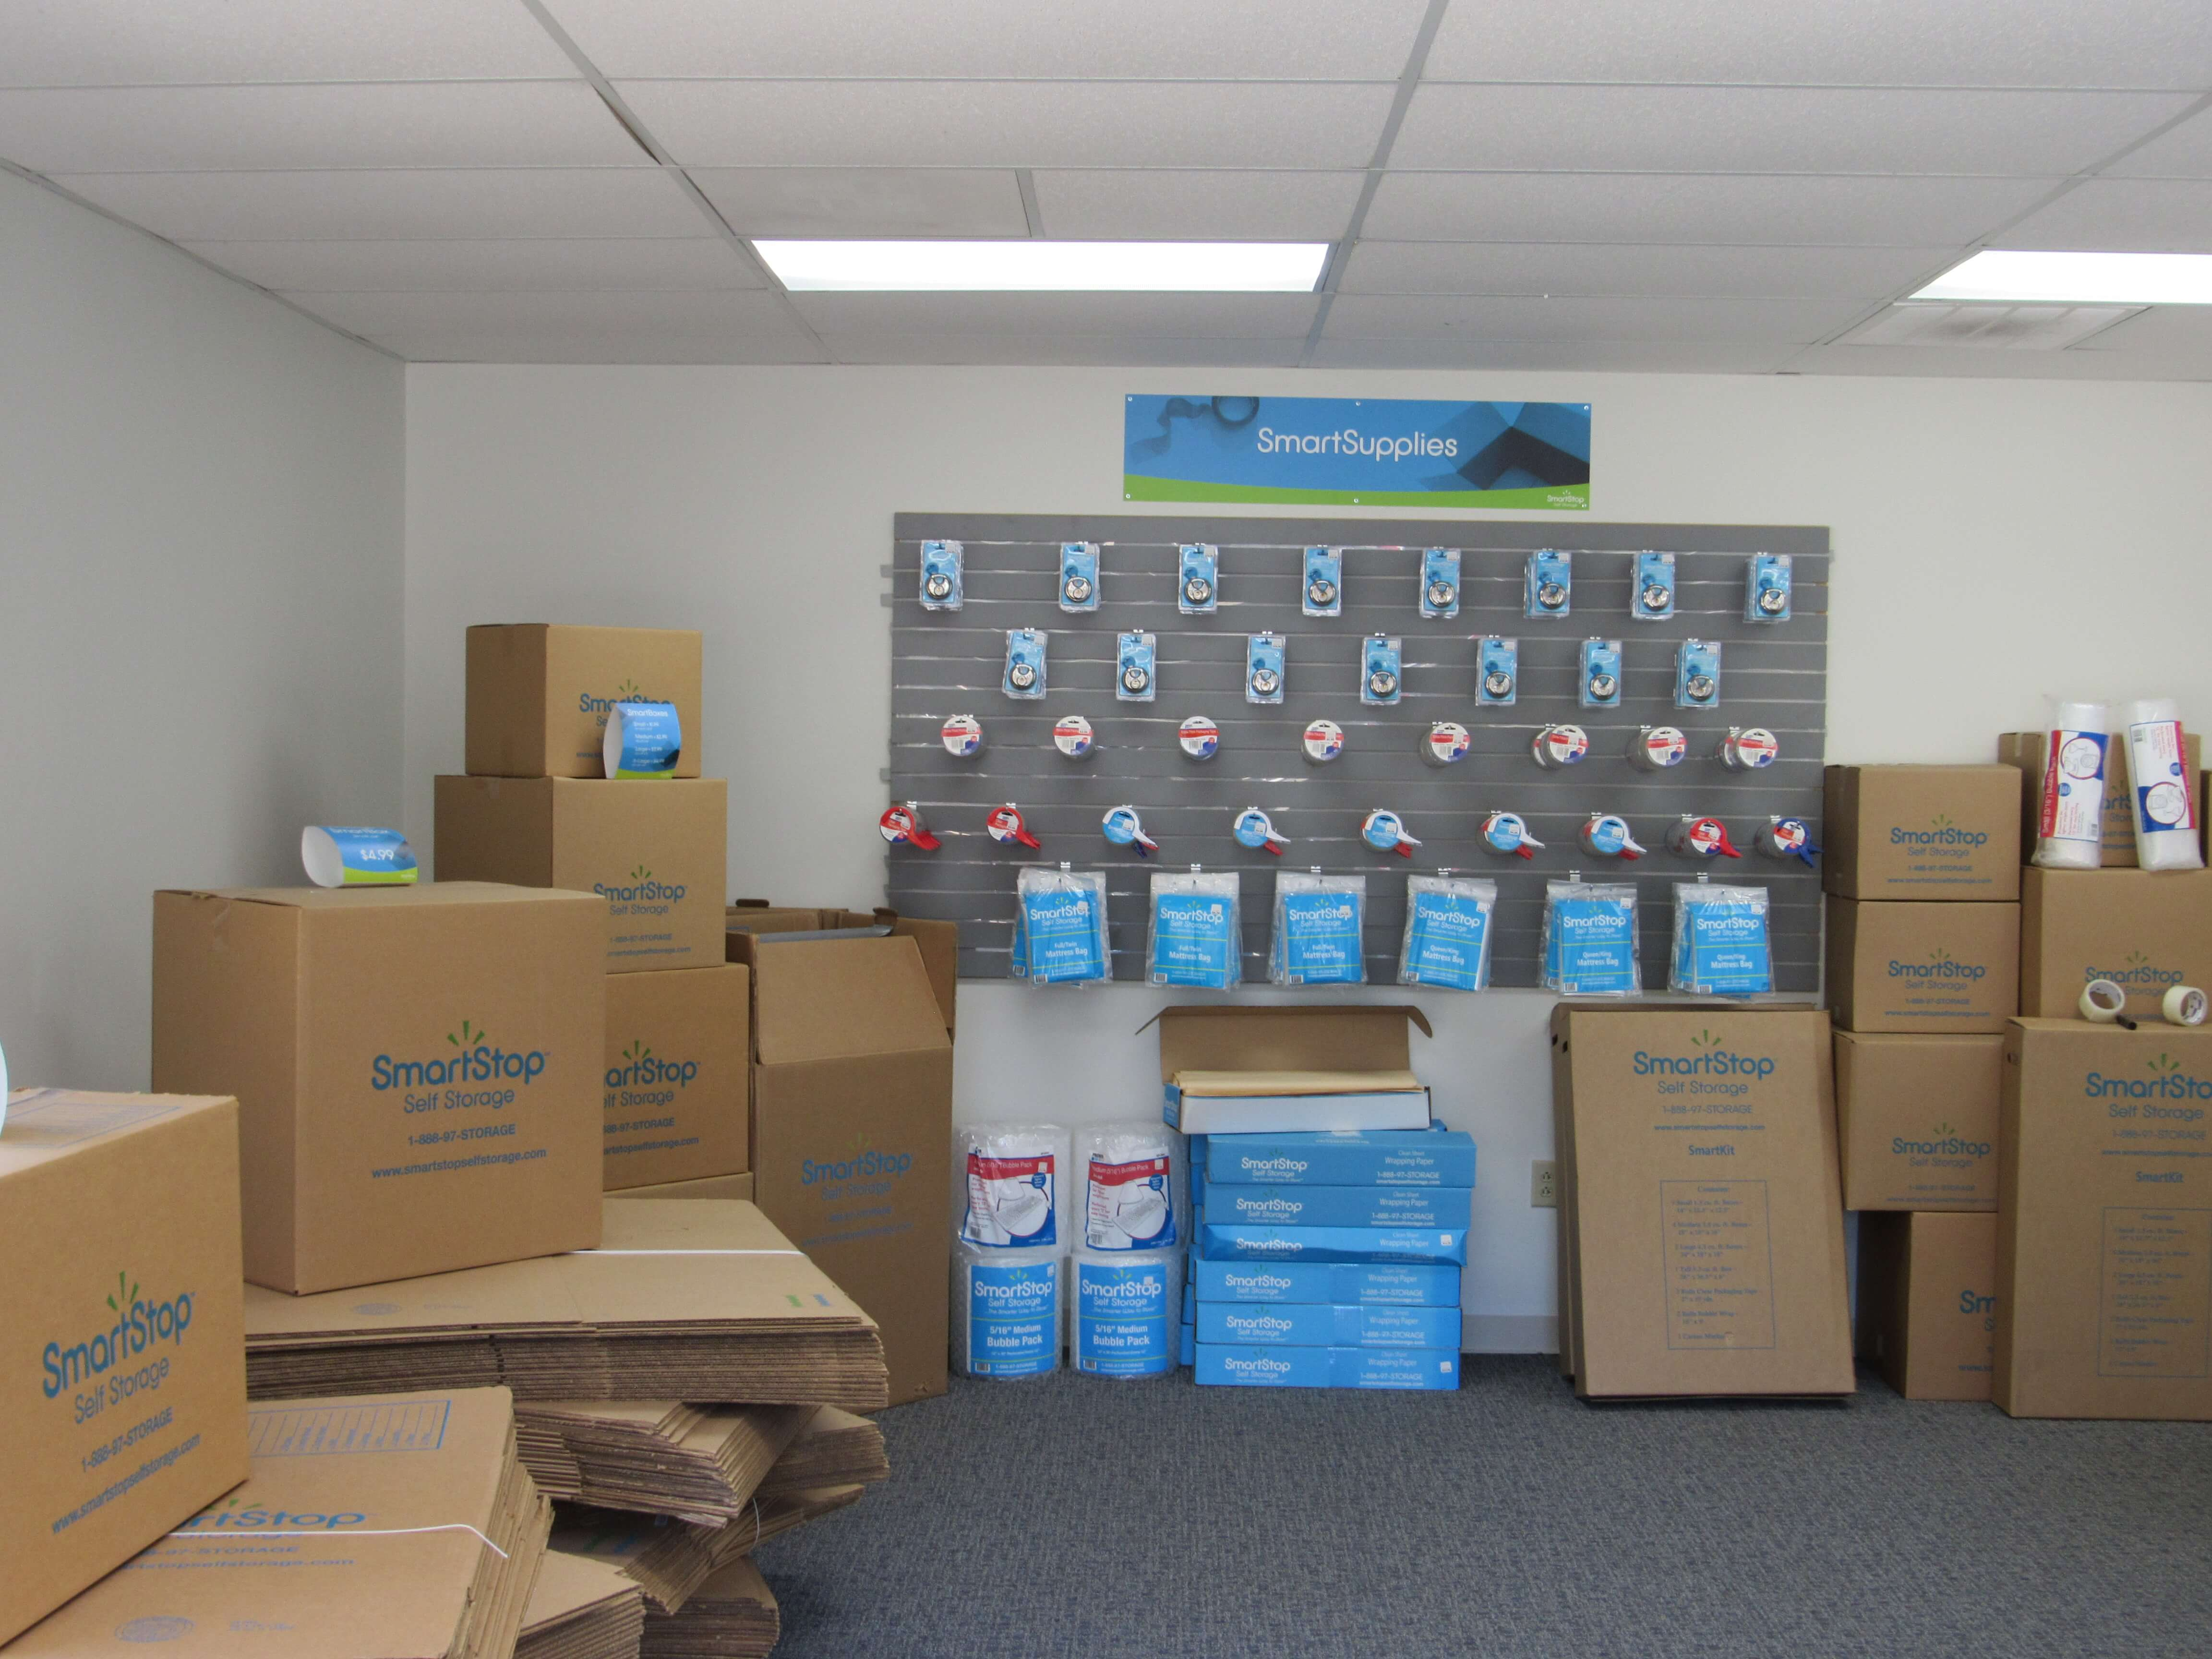 Moving and packaging supplies available for purchase within front office at Smart Stop self storage facility located at 150 Airport Blvd, Morrisville North Carolina